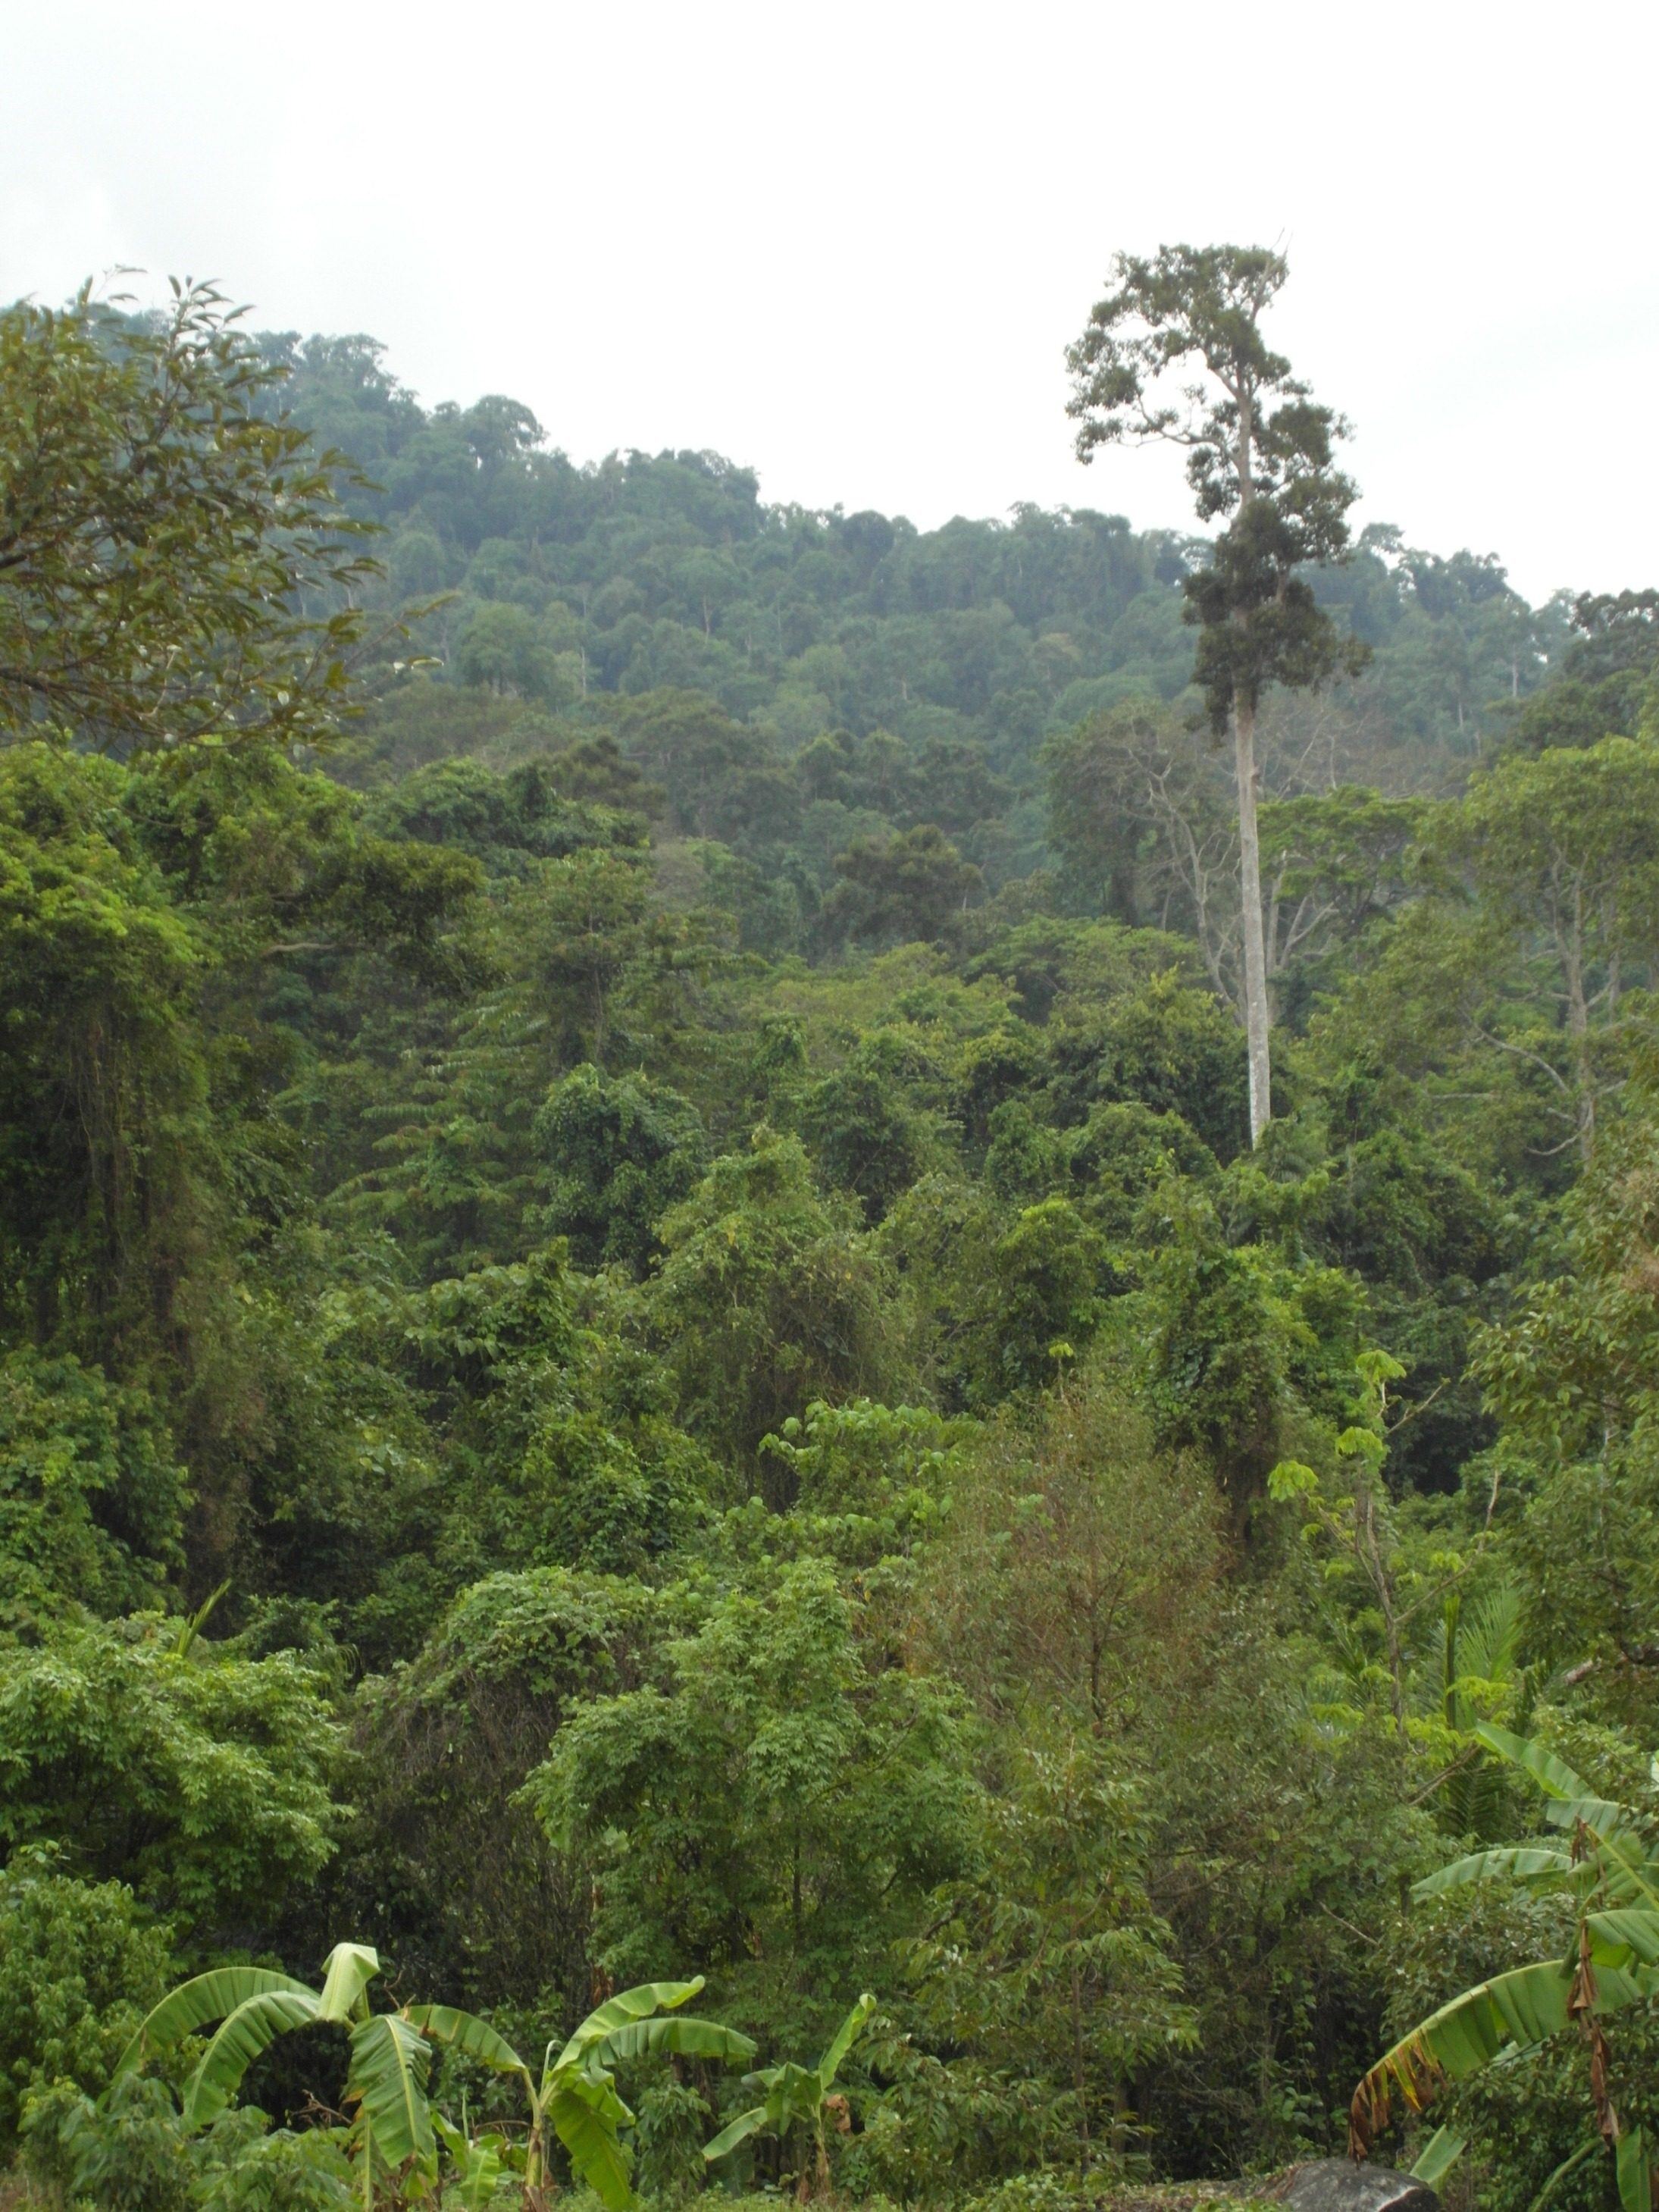 Jungle / tropical rainforest photo